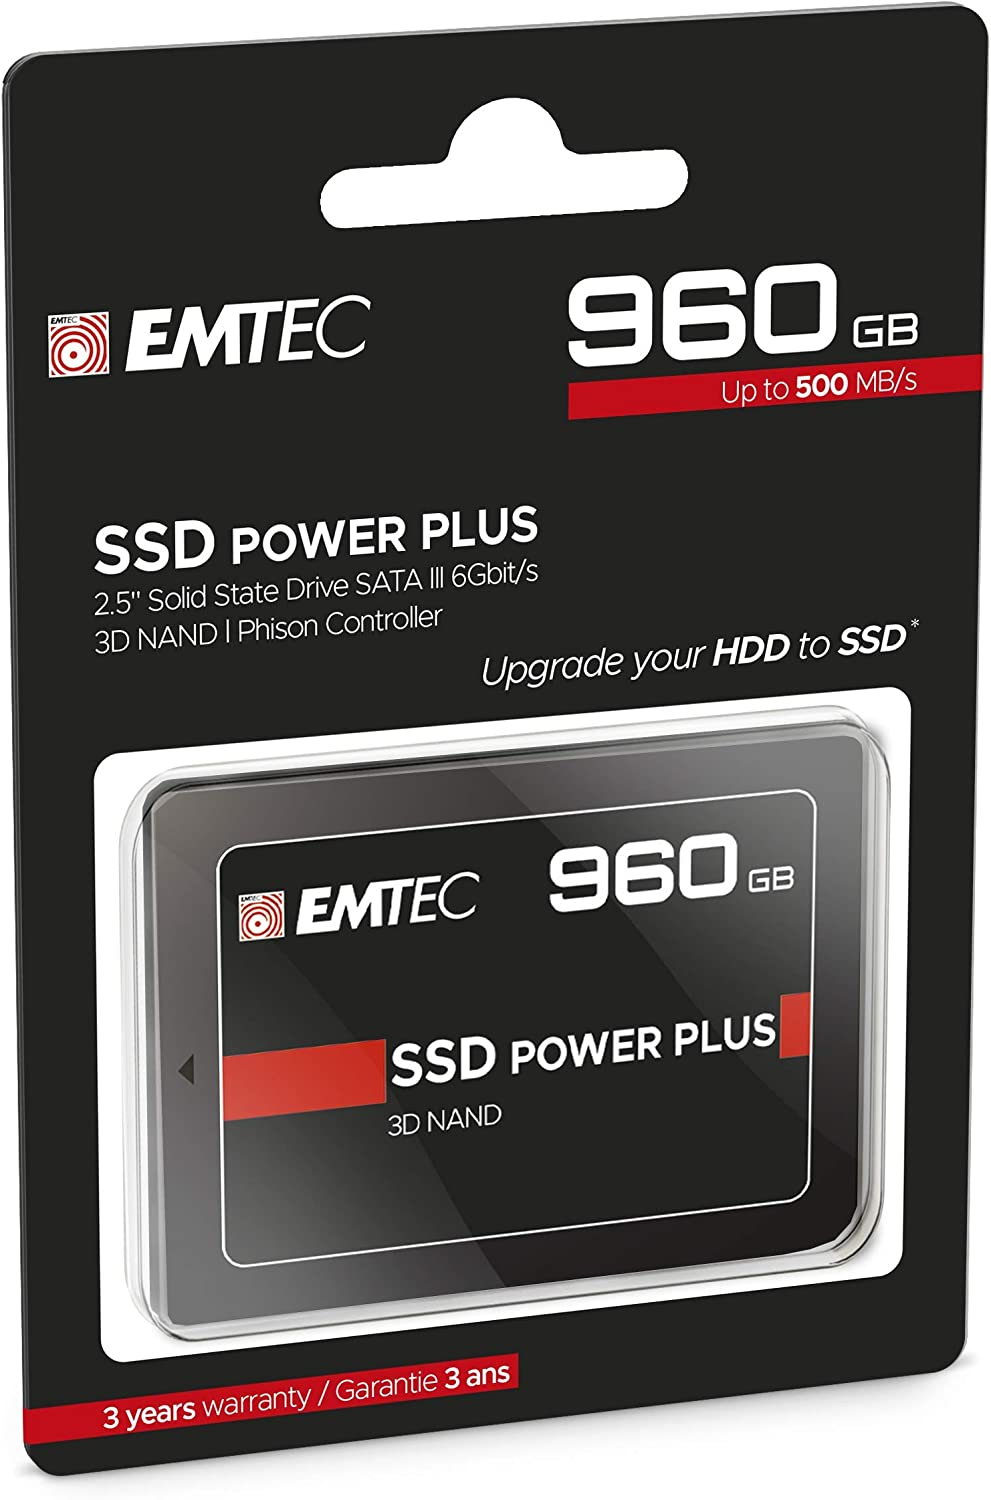 Emtec Internal SSD X150 960 GB: Amazon.es: Informática